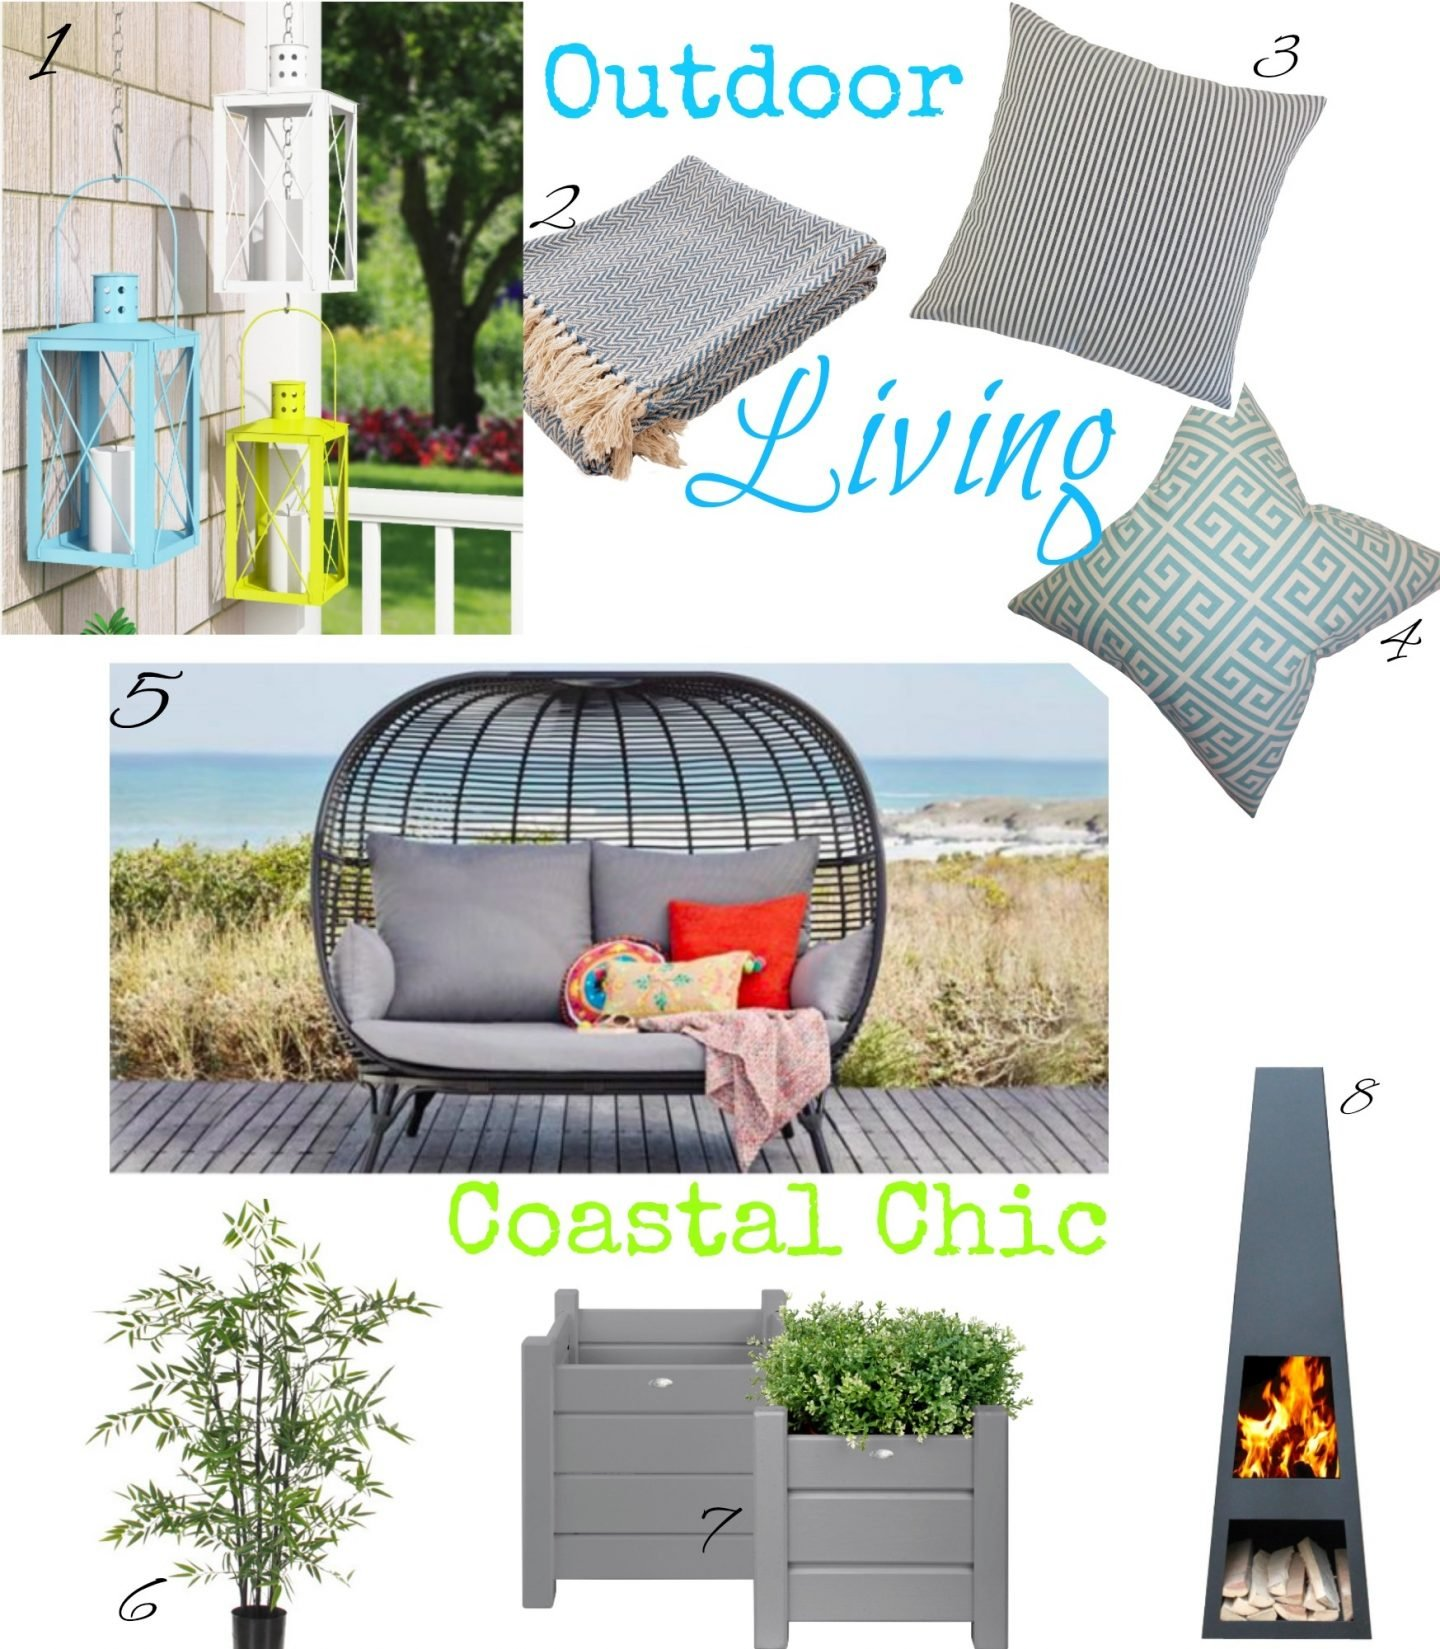 Bringing A Little Coastal Chic Style Garden Style To The Countryside www.extraordinarychaos.com